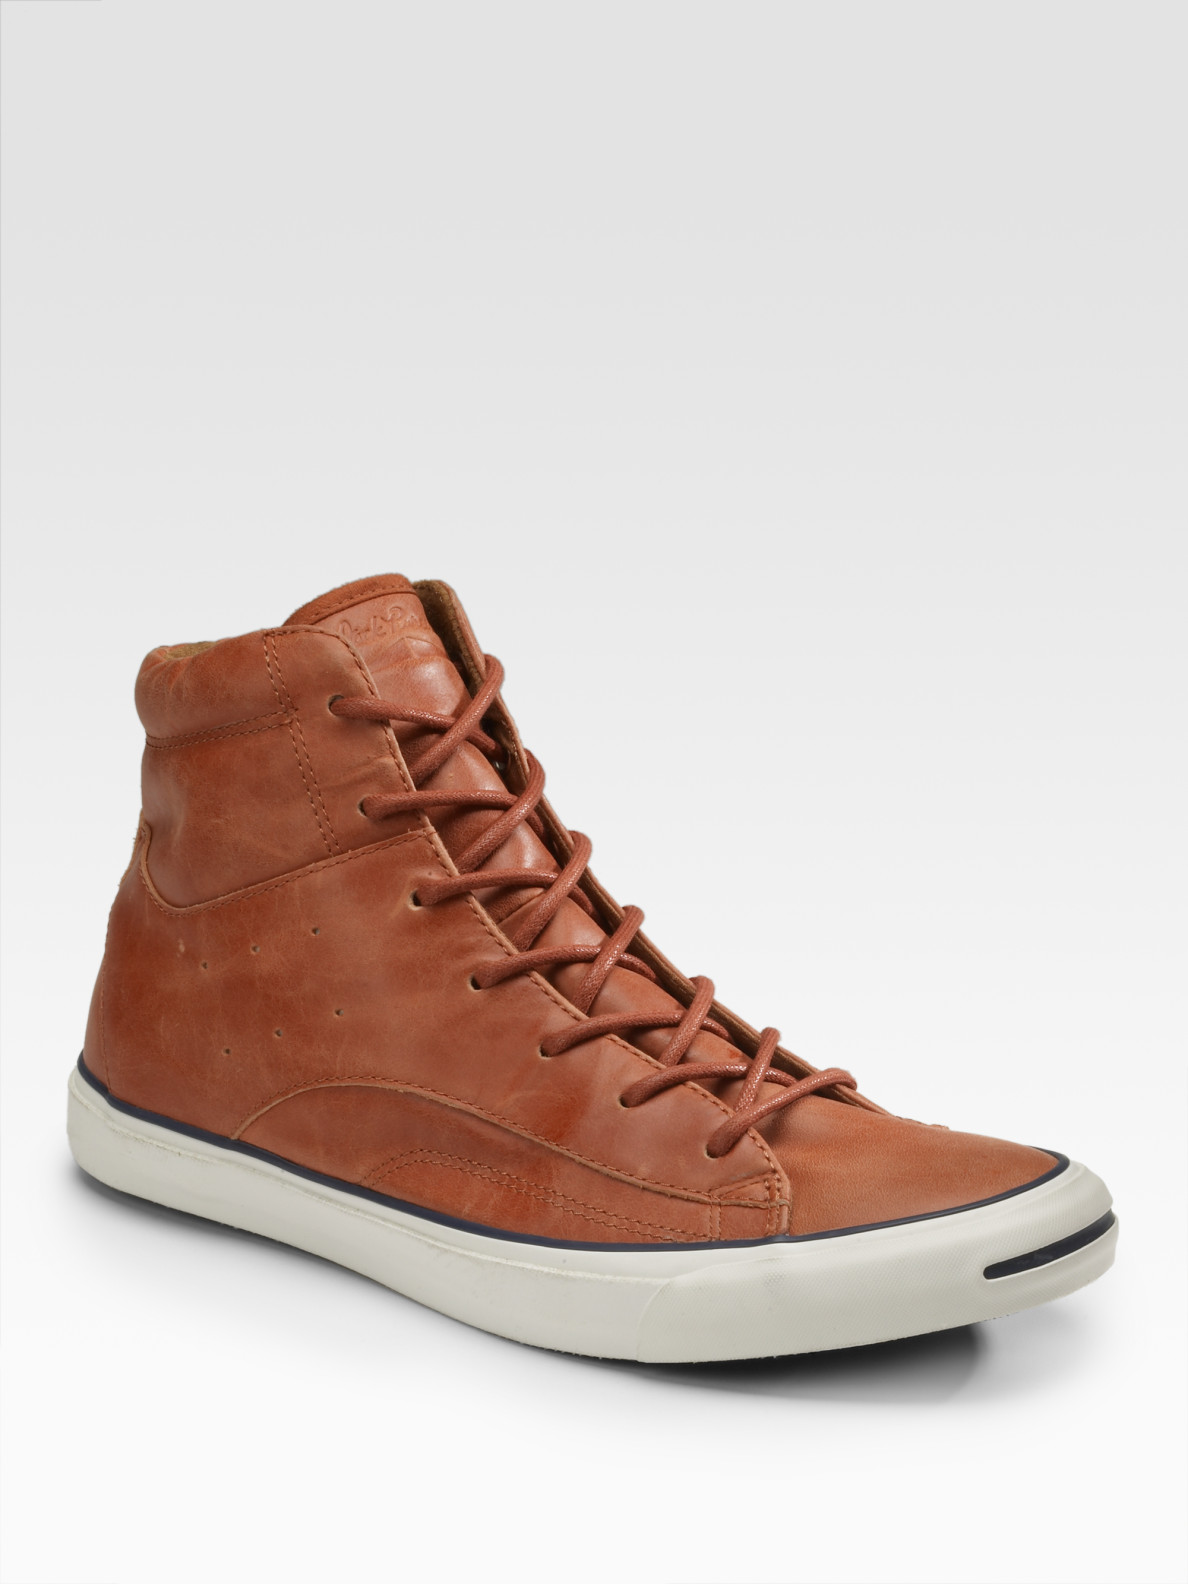 1a24e7ef5a54 Lyst - Converse Jack Purcell Racearound High-tops in Brown for Men